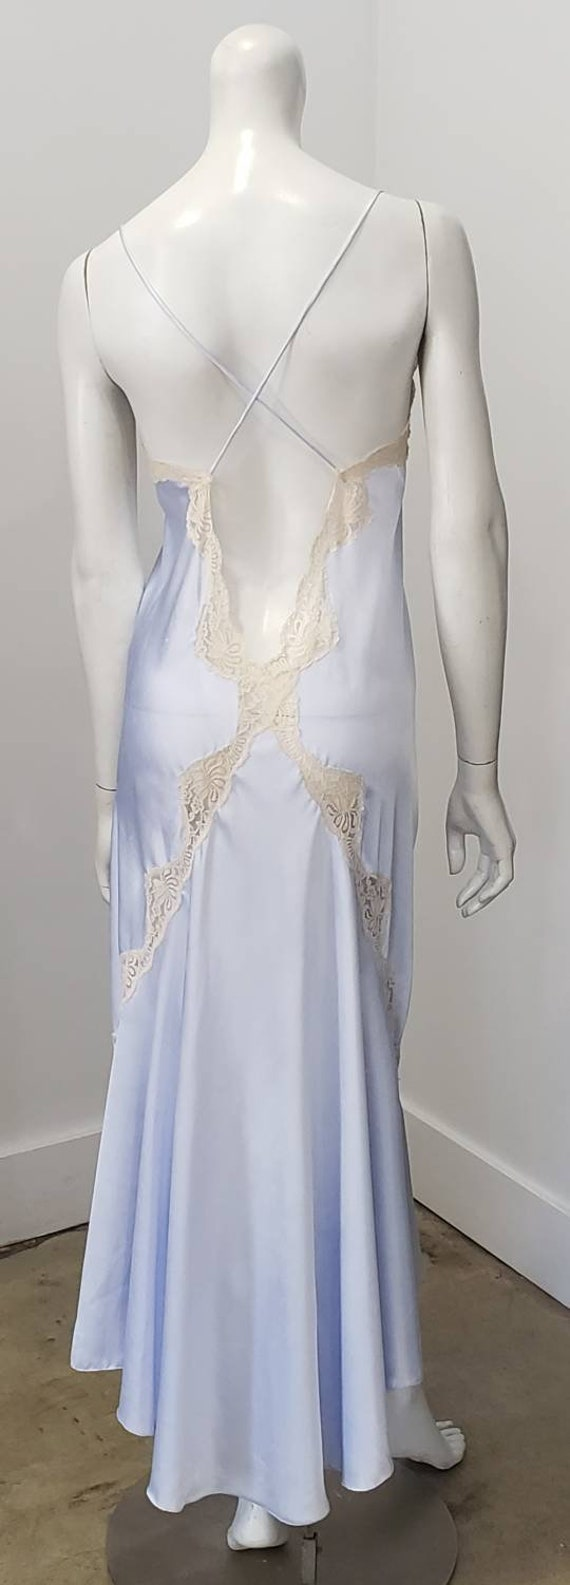 Vintage Glam Powder Blue Deep V Cream Lace Open Ba